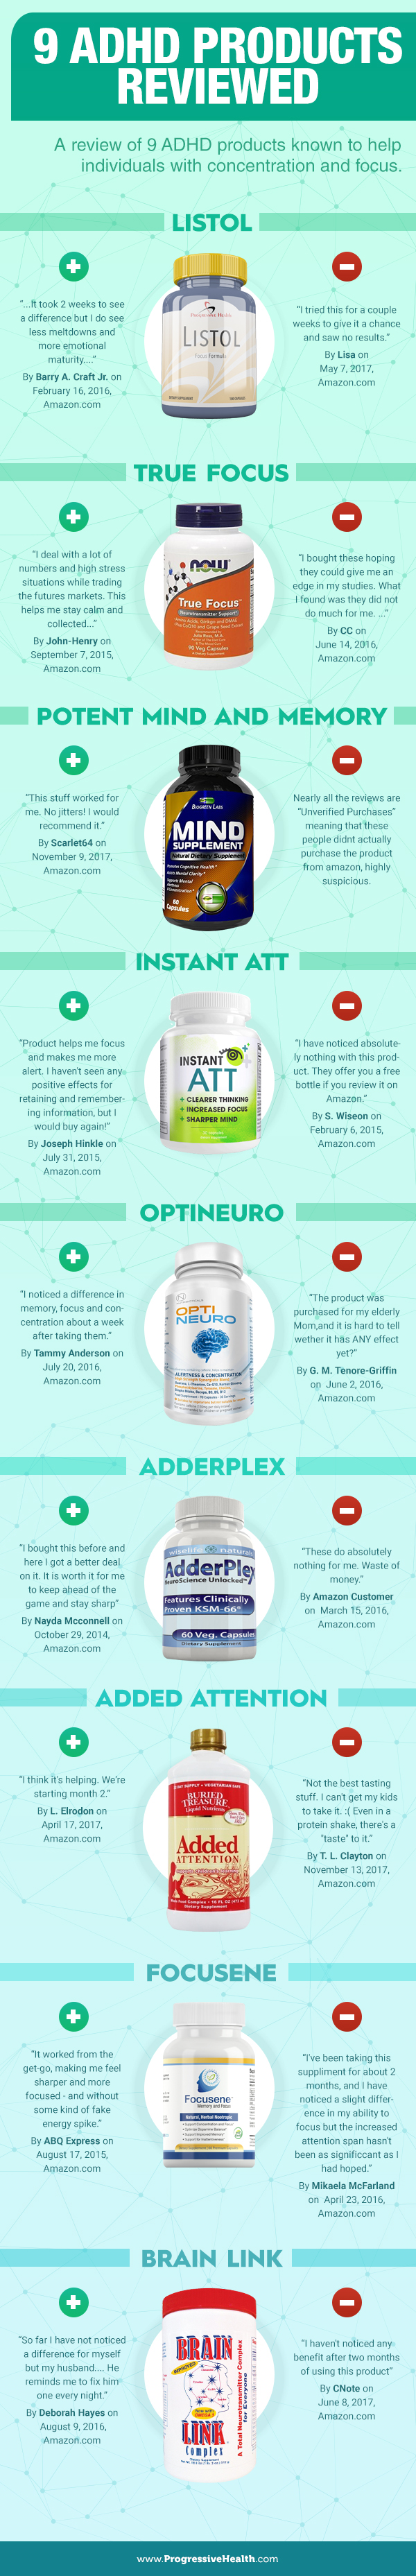 9 ADHD Products Reviewed